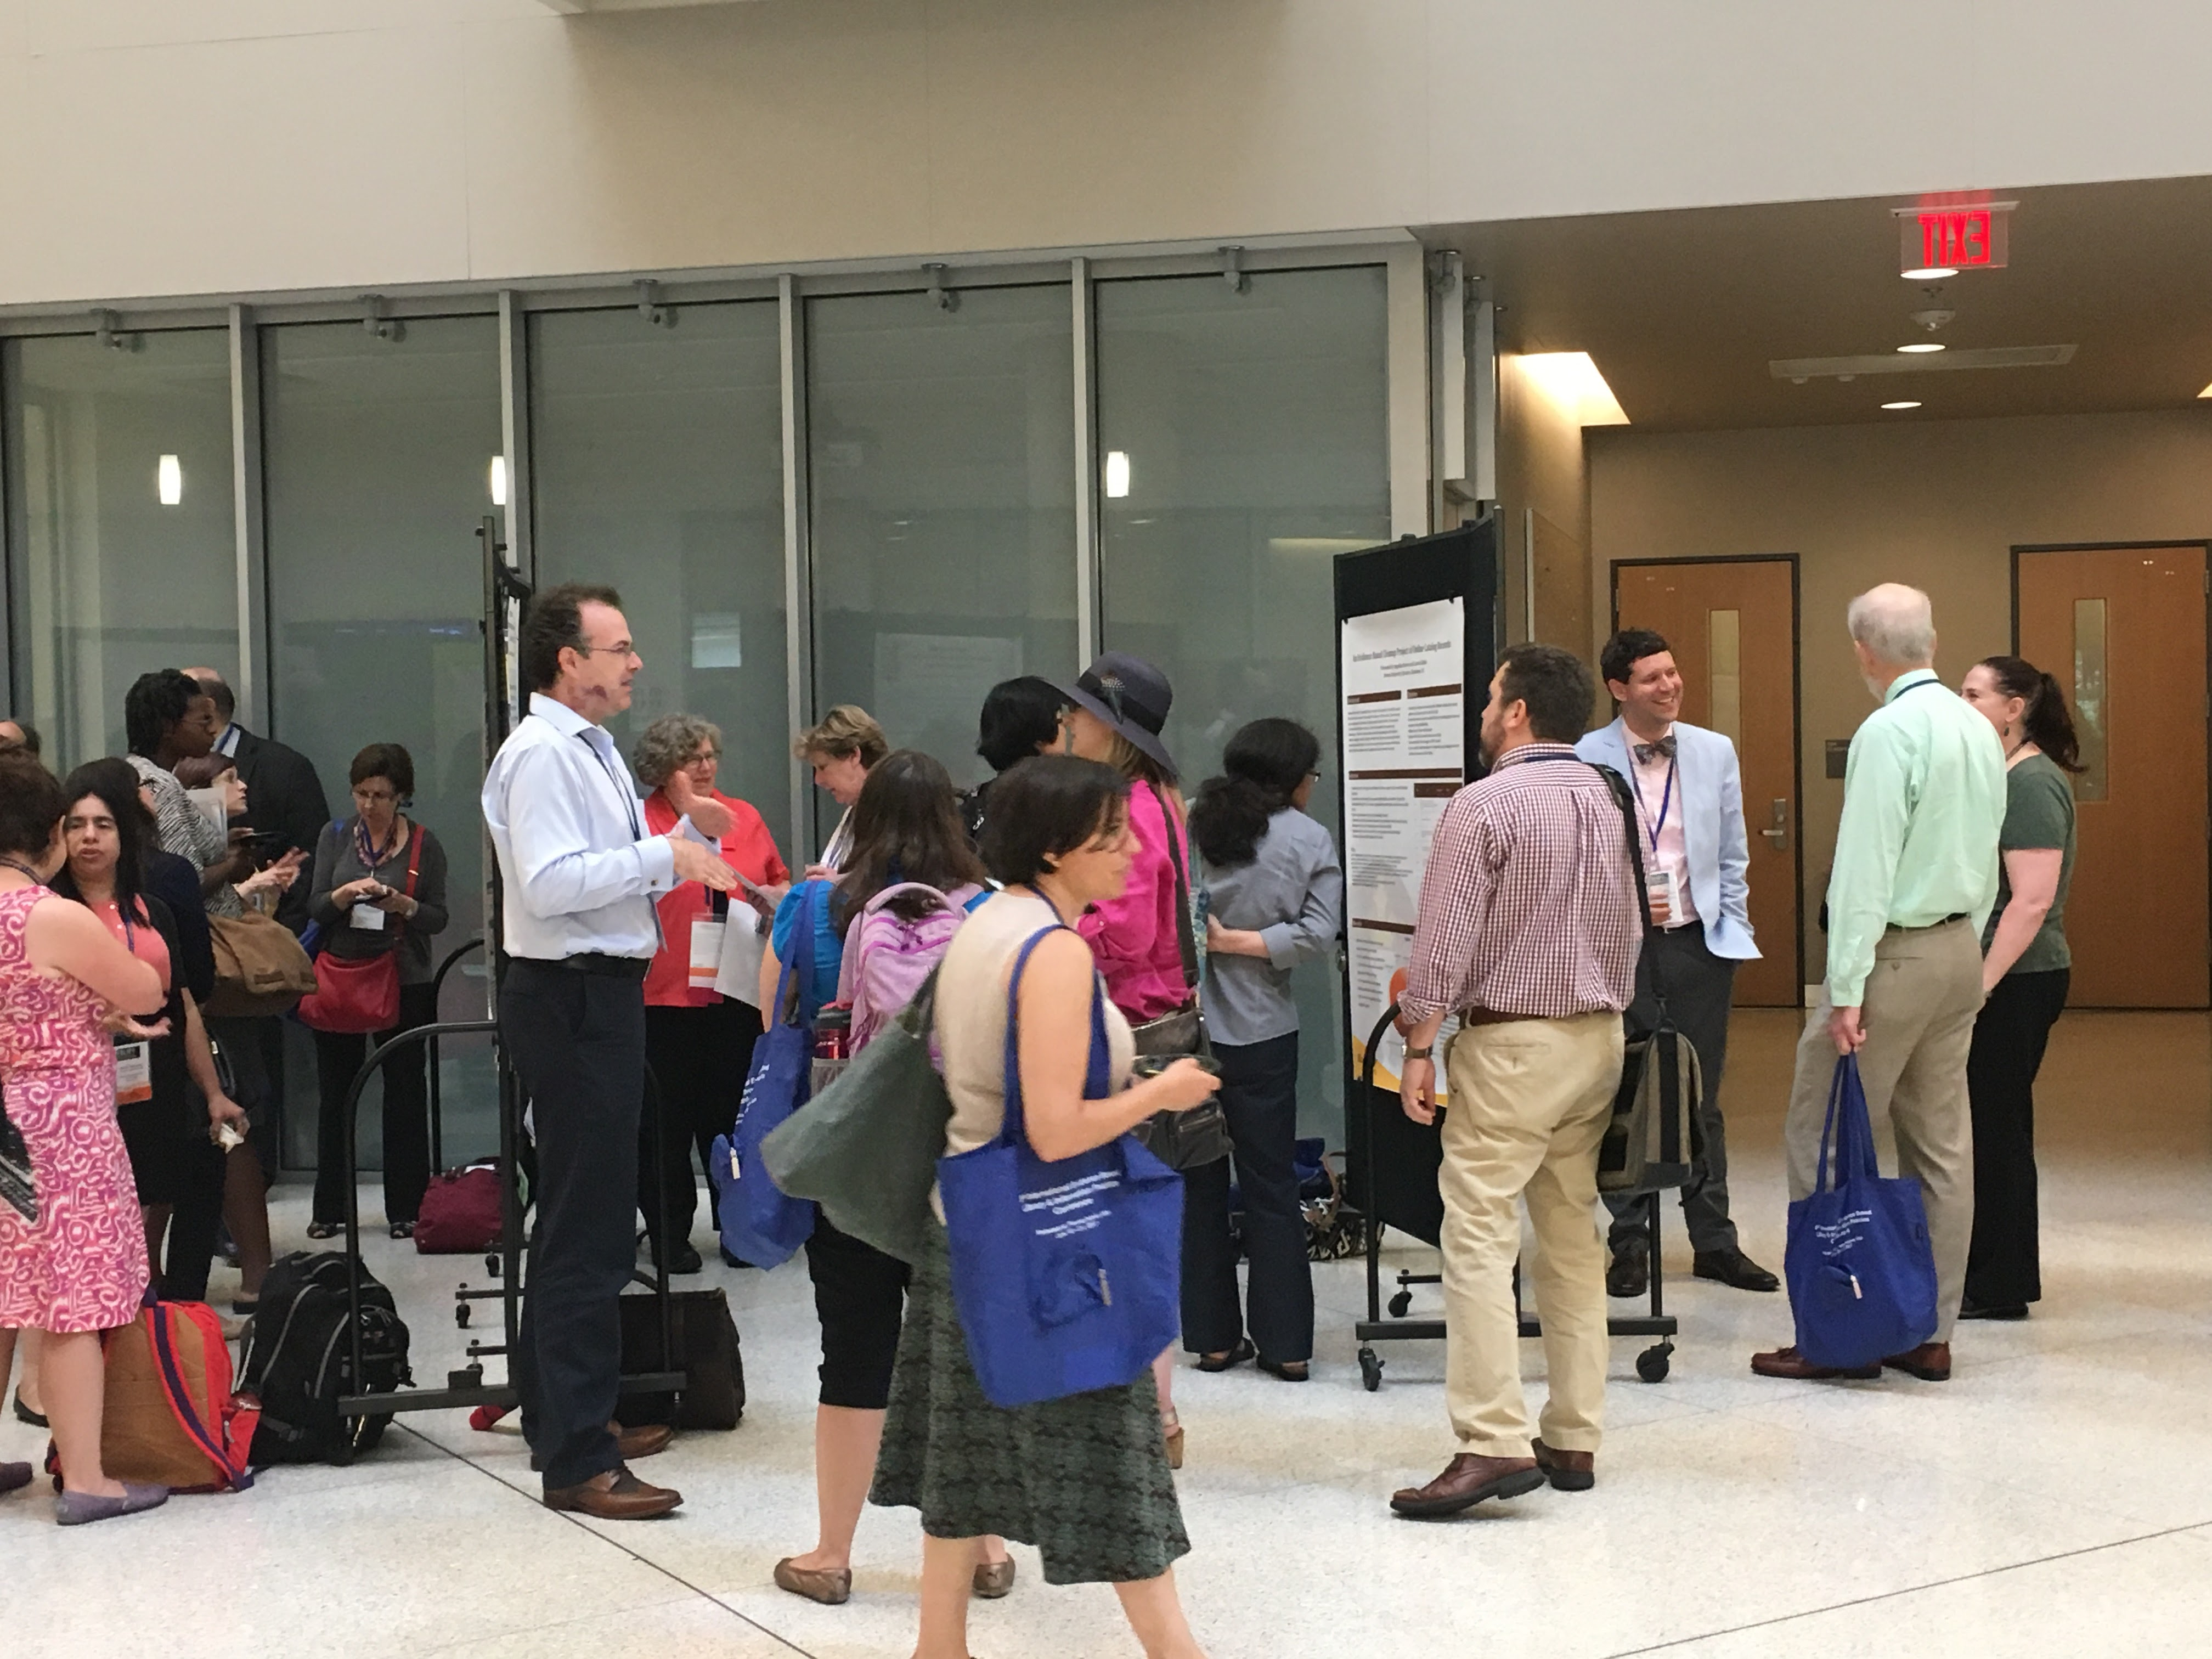 Conference attendees examine poster sessions in the PISB atrium during EBLIP9